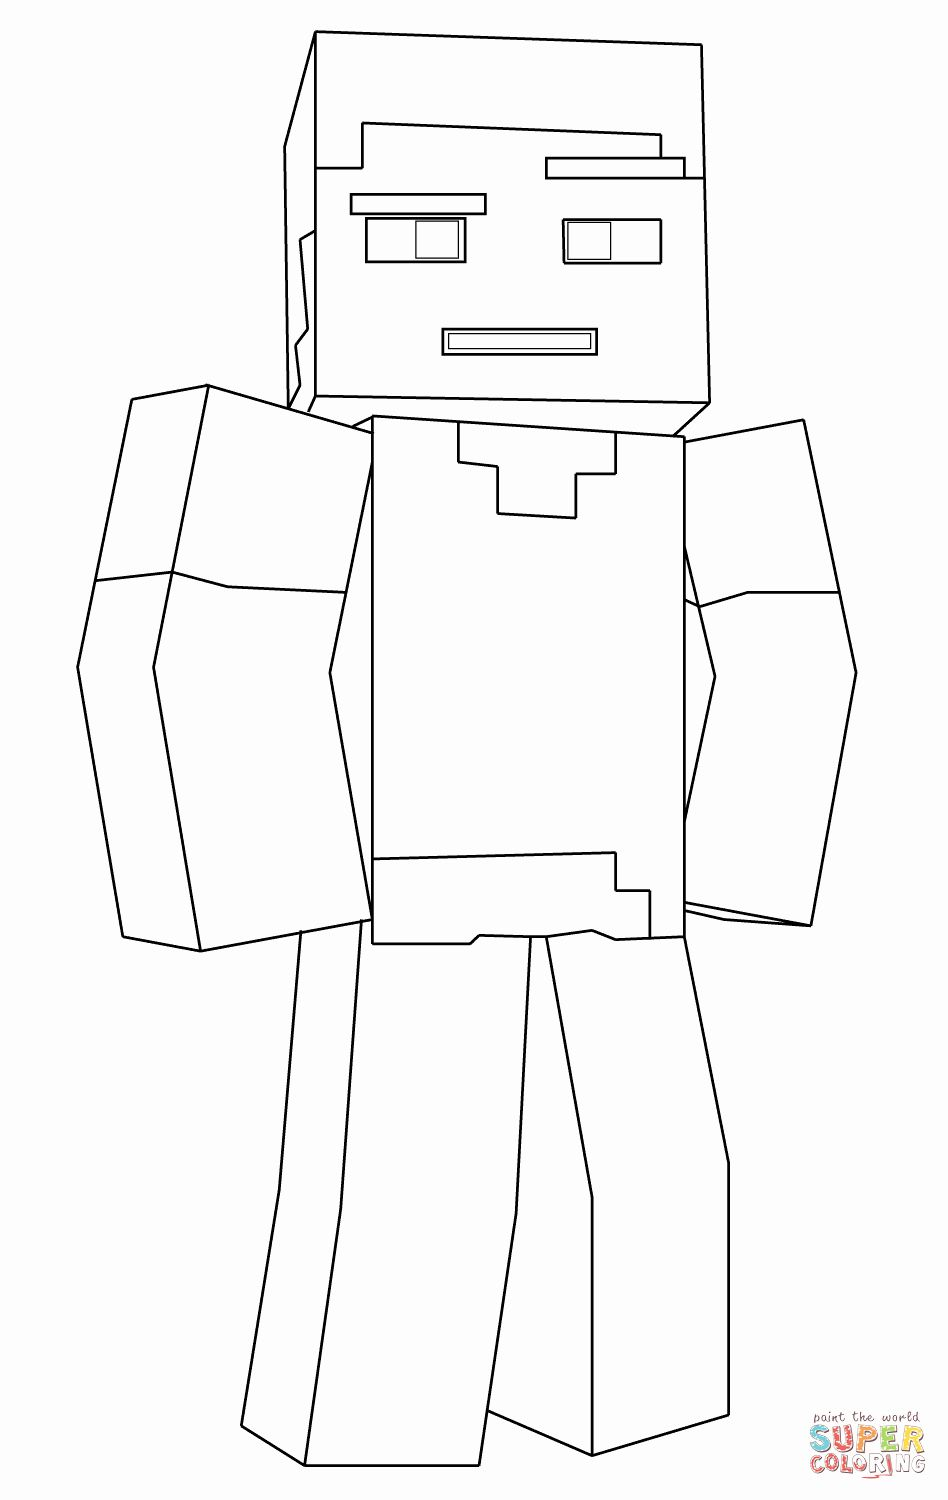 Minecraft Steve Coloring Page Awesome Minecraft Steve Coloring Page In 2020 Minecraft Steve Minecraft Coloring Pages Minecraft Drawings